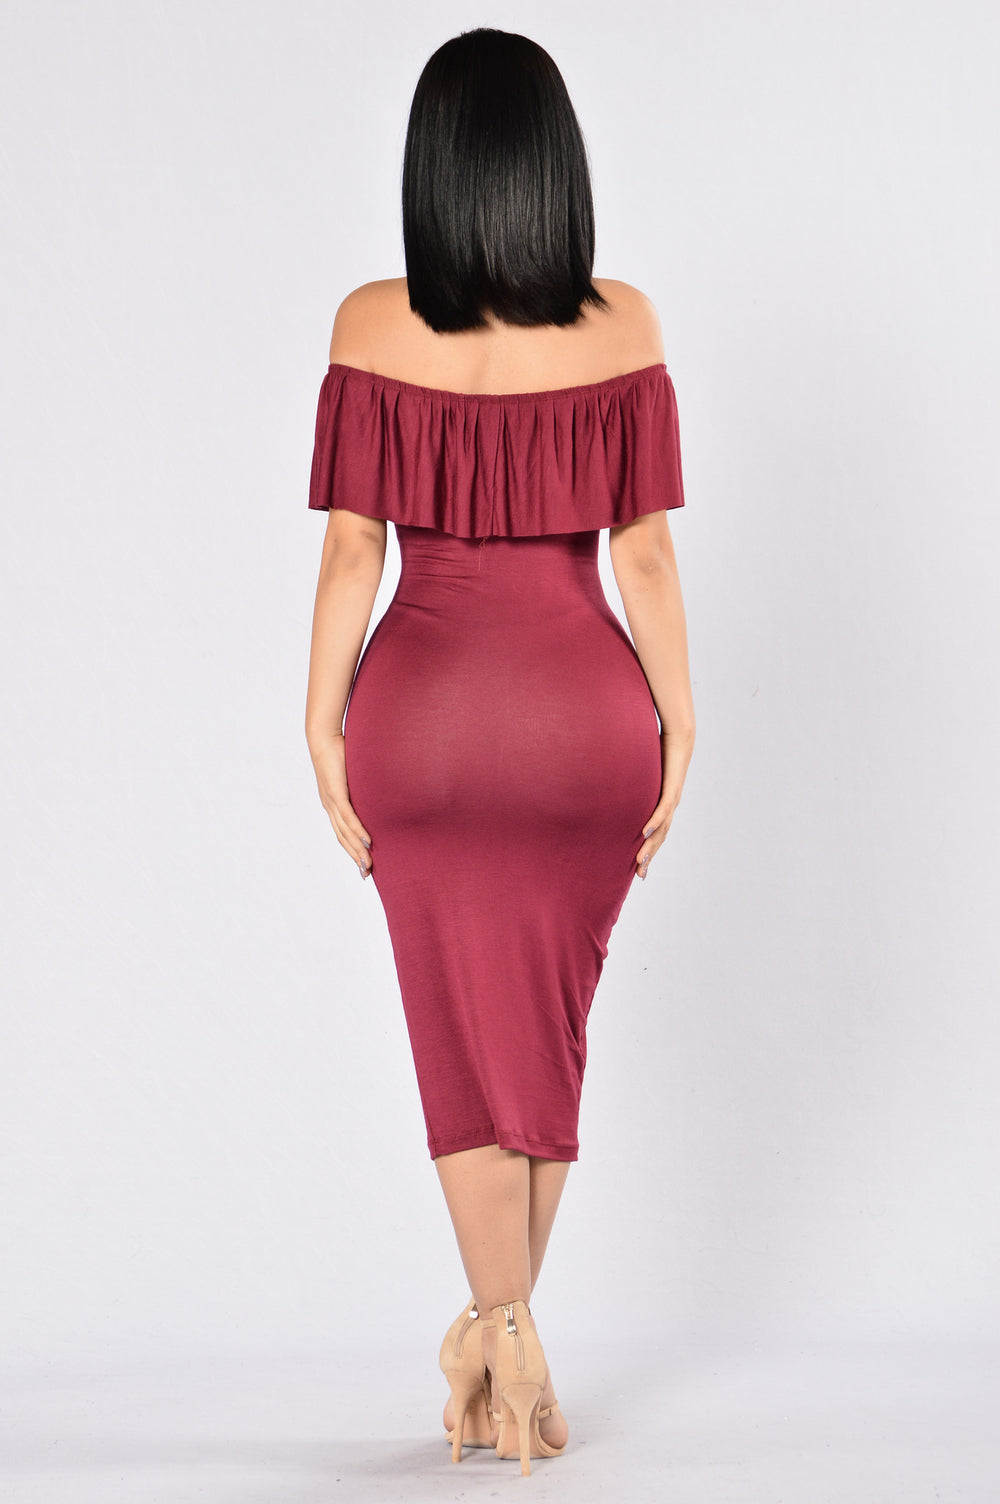 Take The Offensive Dress - Burgundy